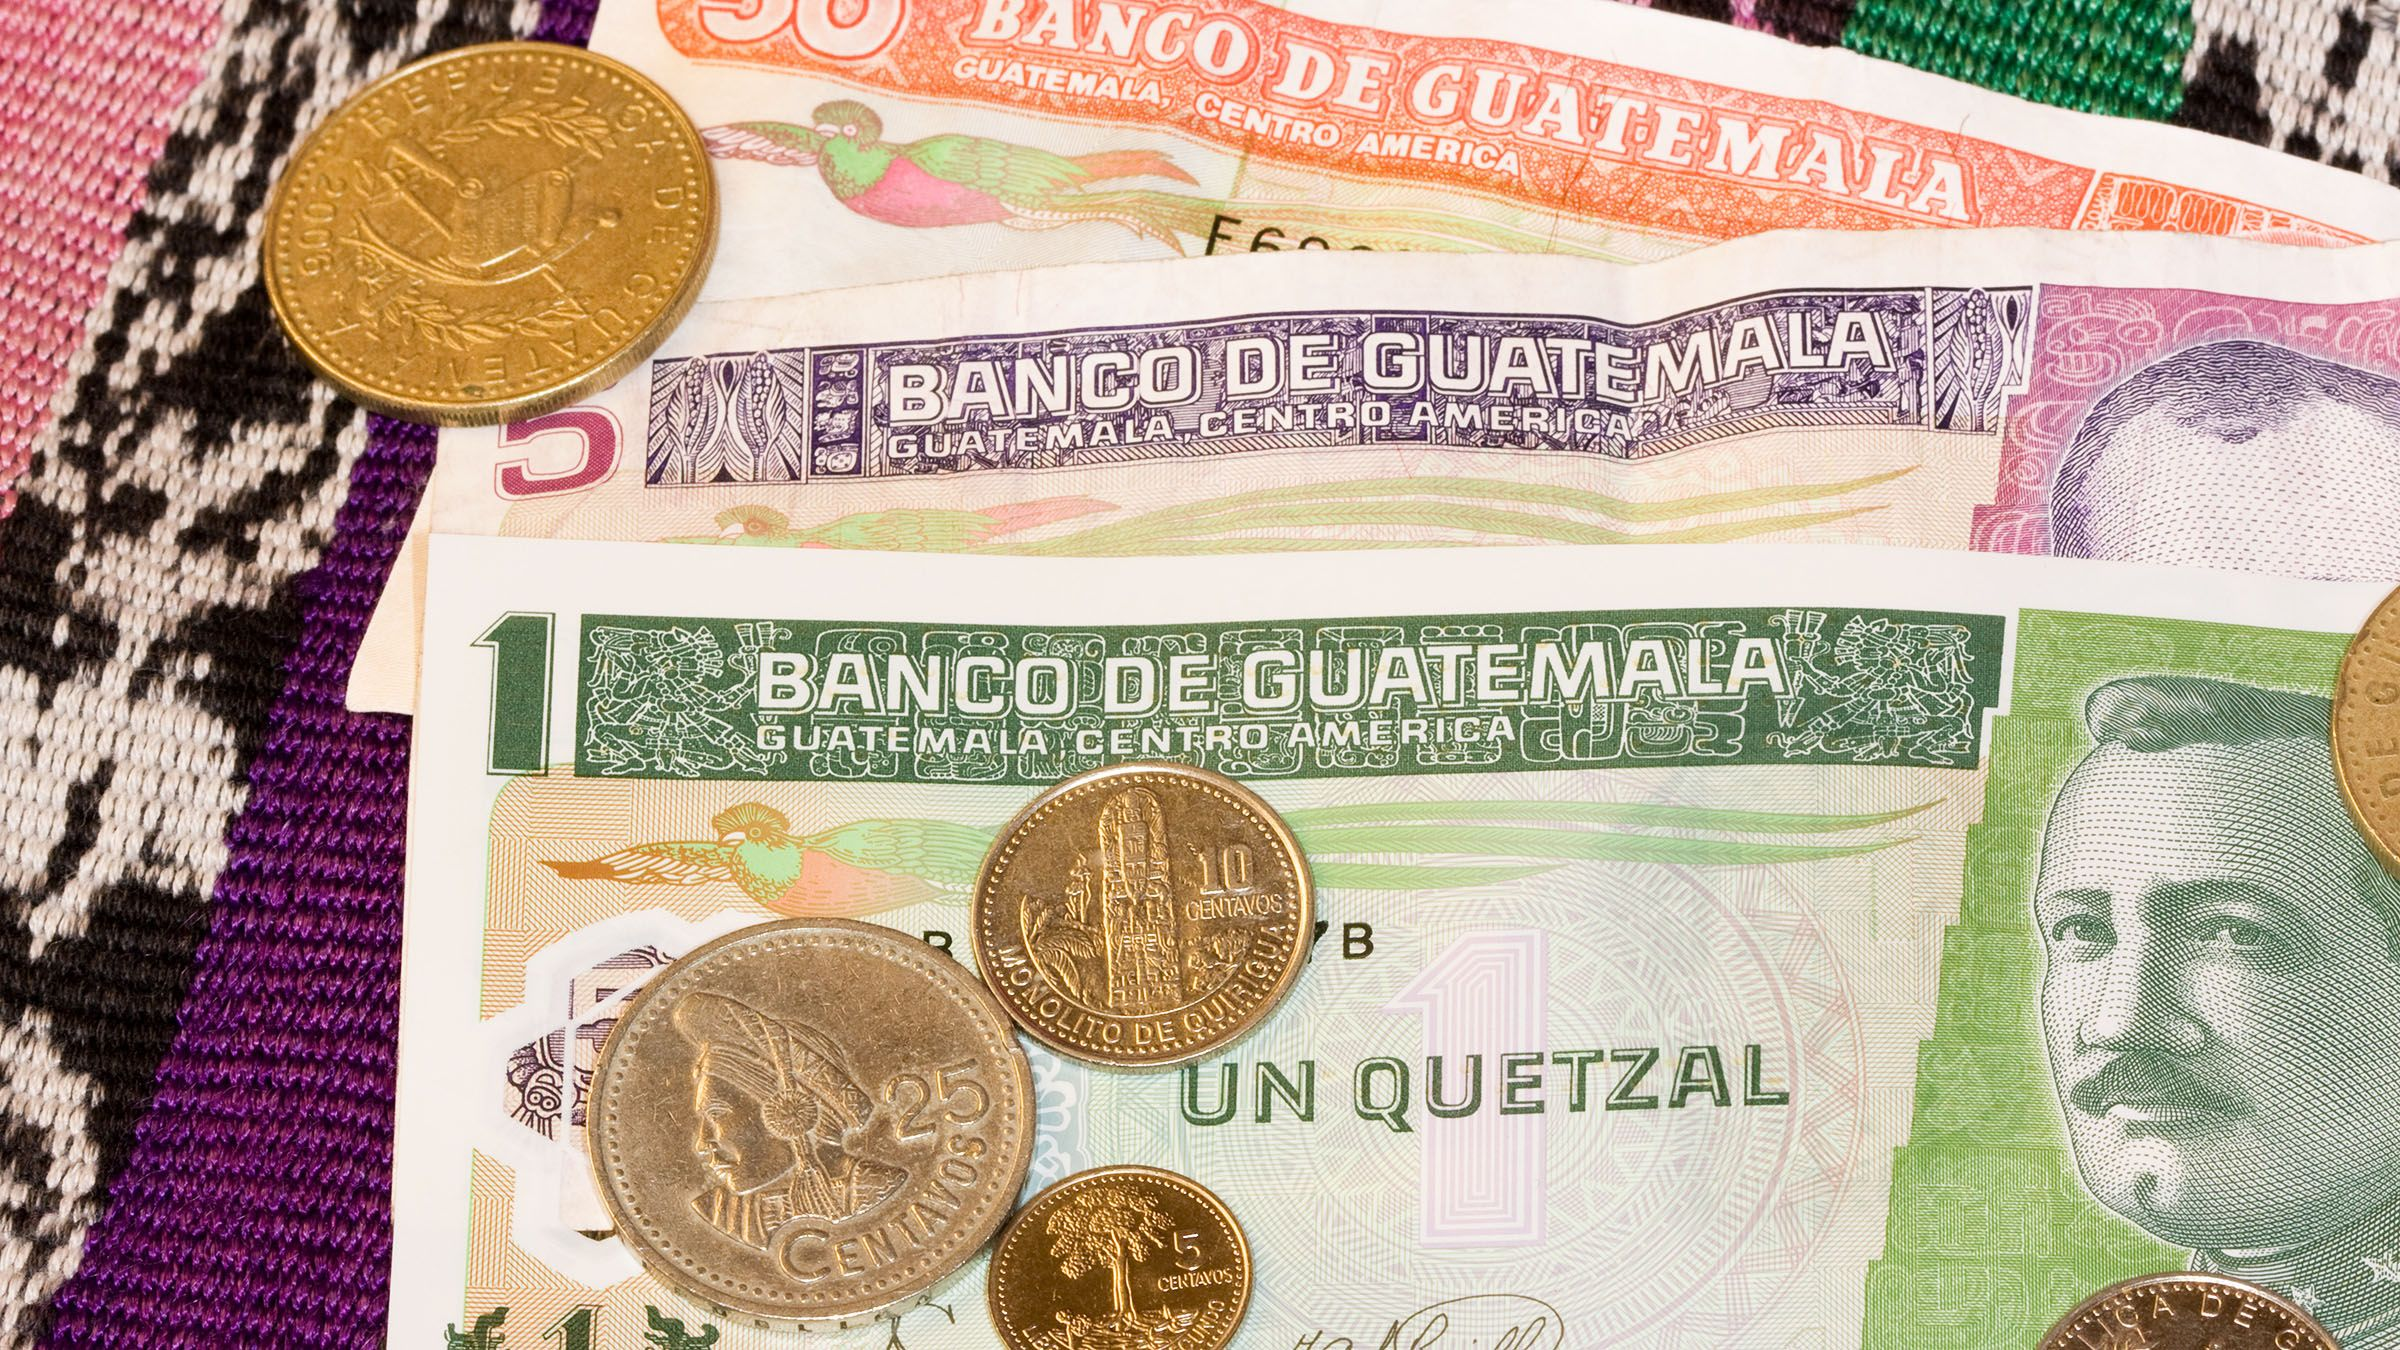 El Quetzal La Moneda Oficial De Guatemala Traveling By Yourself Guatemala Guatemala City